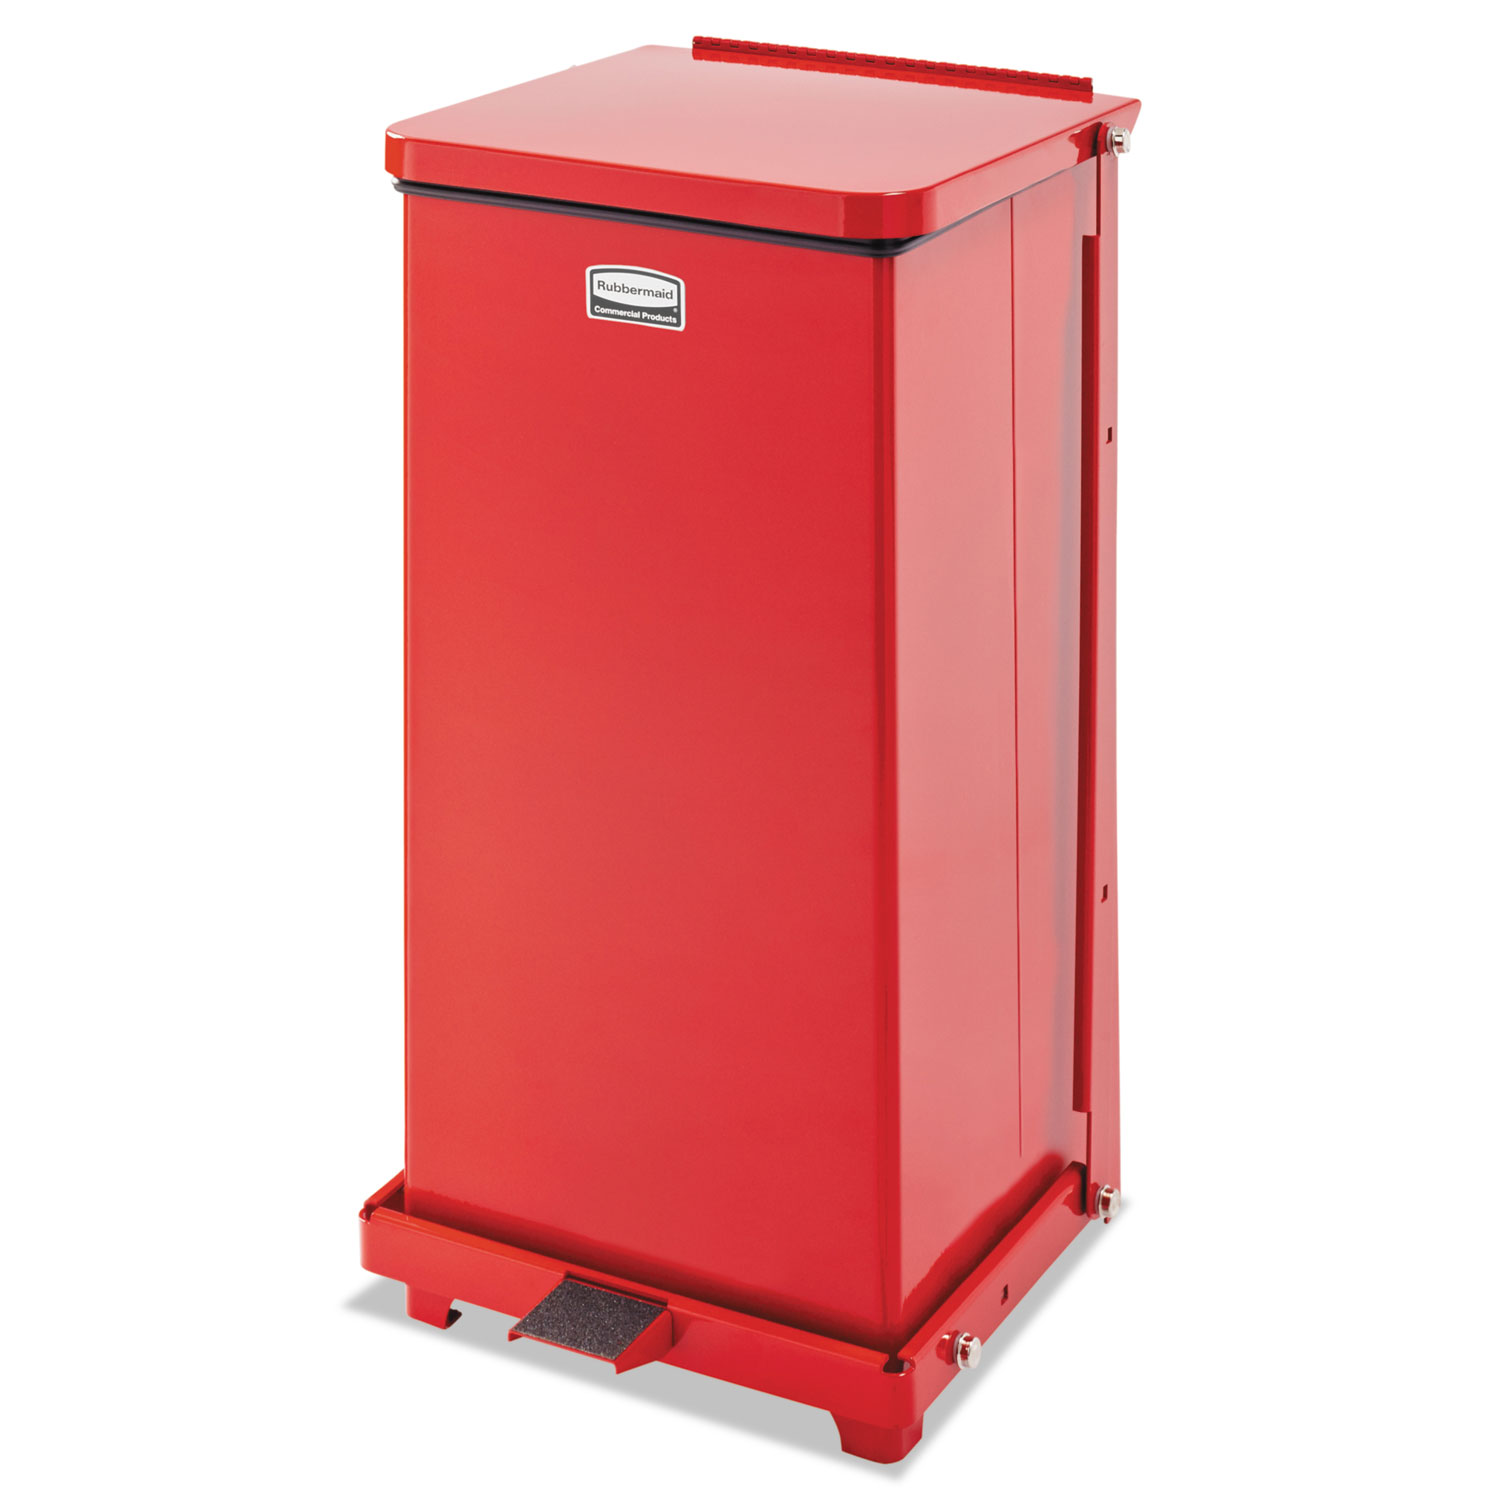 "Defenders Square Step Can, 12 gal, Red, 12"" Square, 23"" High"